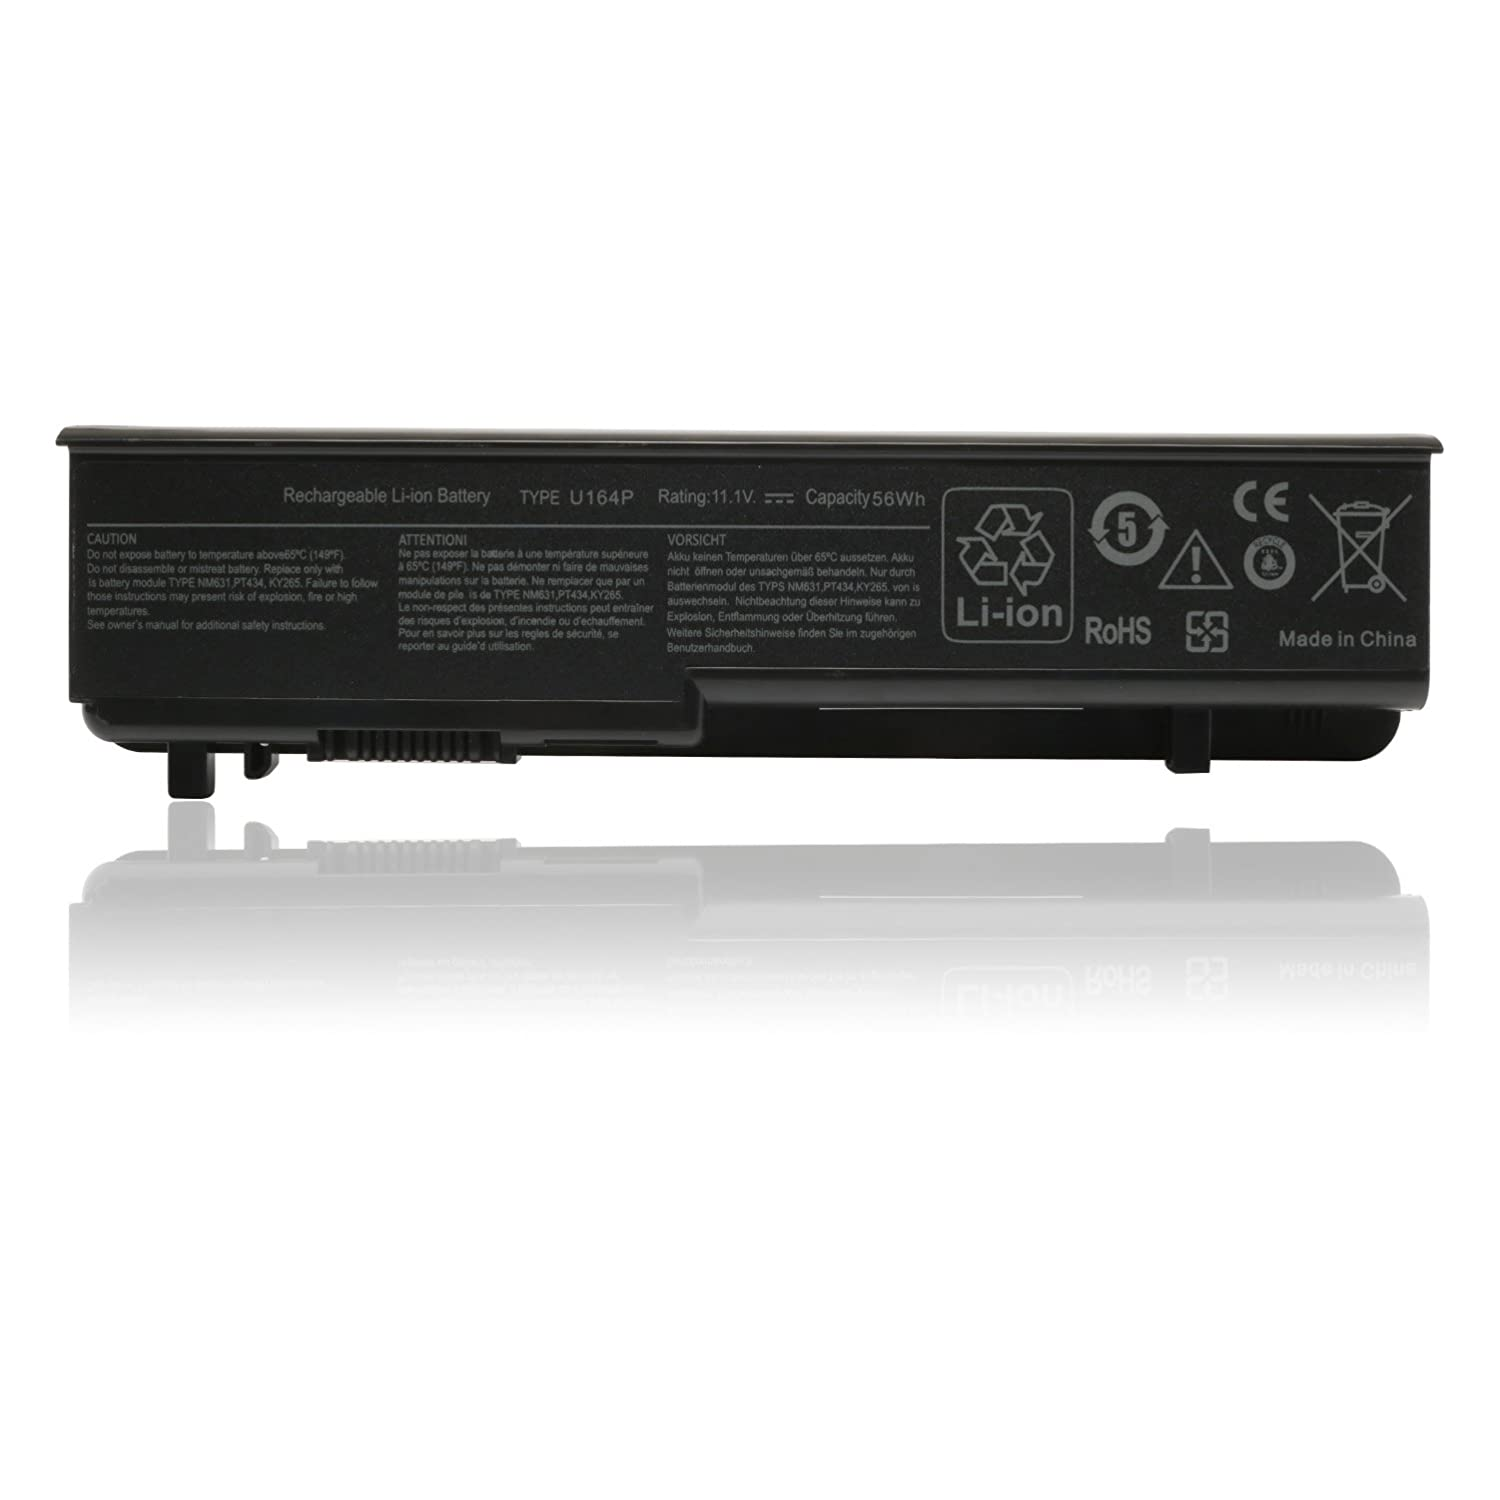 Easystyle 56wh Laptop Dell Battery For Studio 17 1700 Wiring Diagram 1745 1747 1749compatible P Nn856p U164p M905p U150p 312 0186 3120 196 Computers